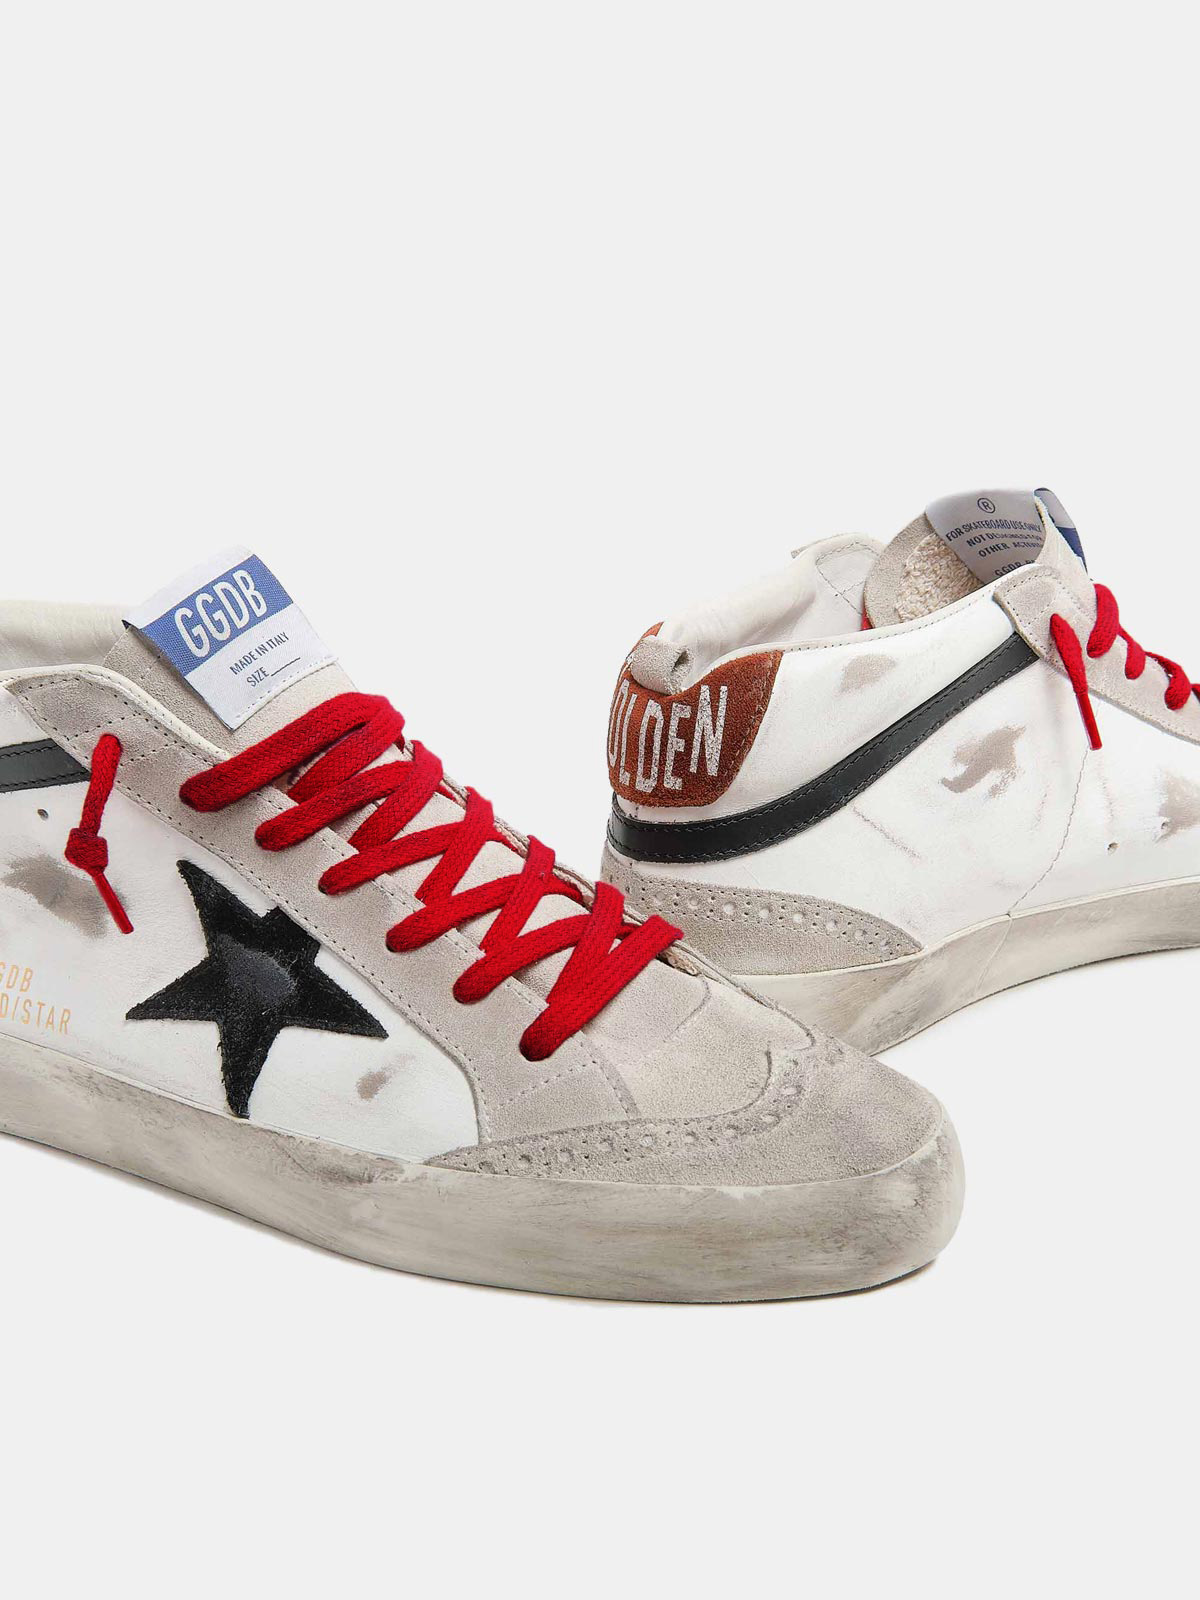 Golden Goose - Mid Star sneakers in leather with suede star in